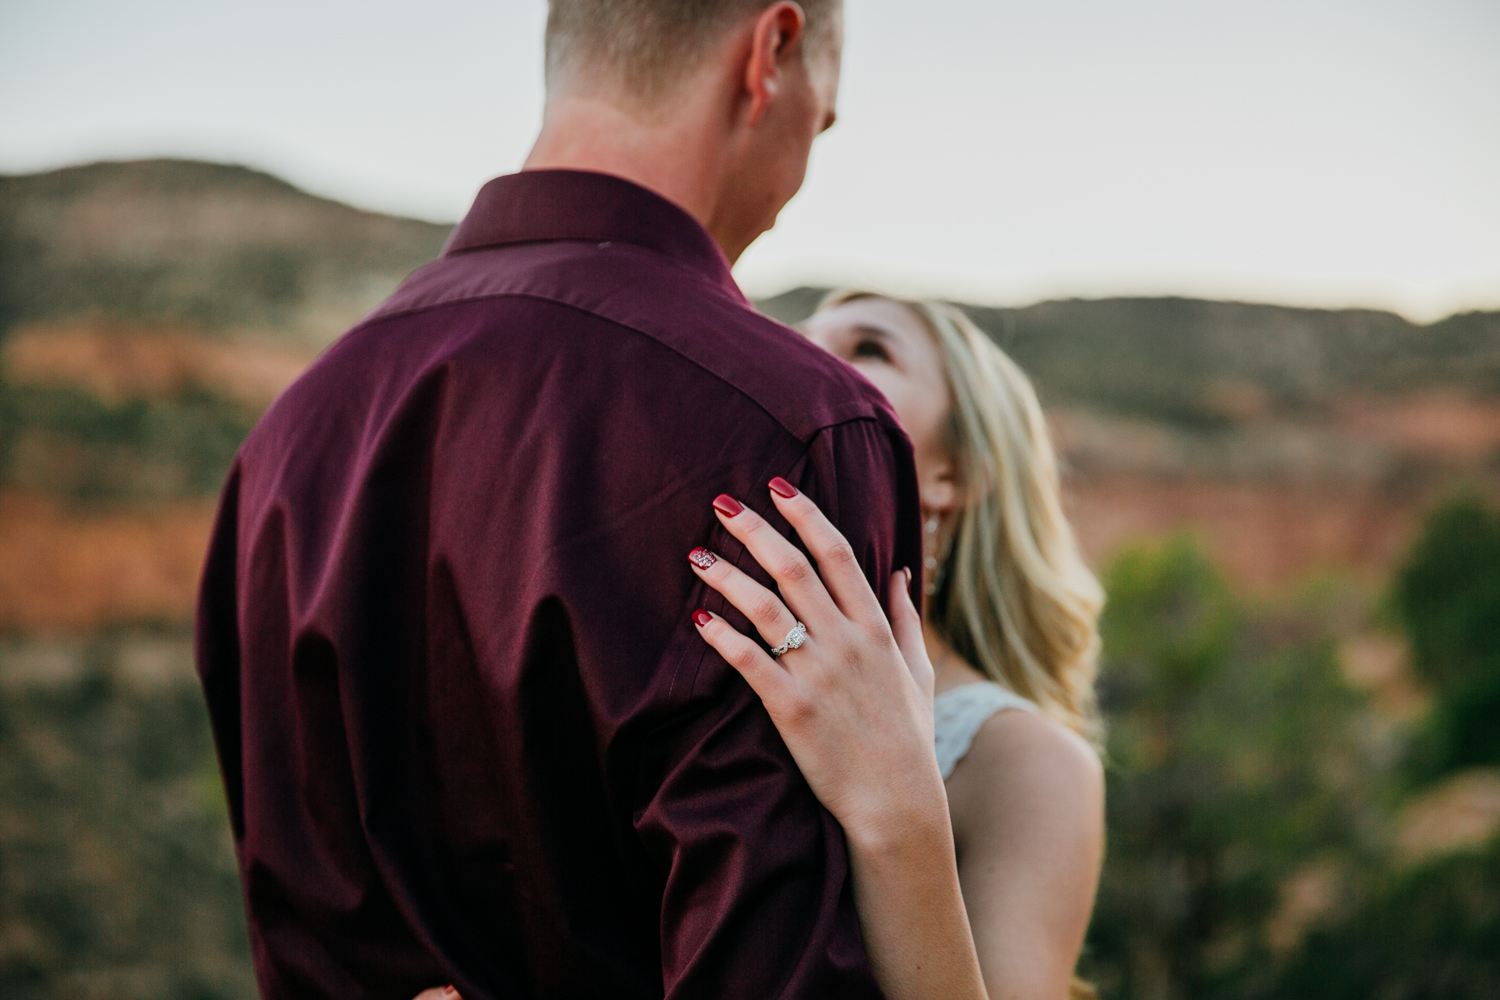 grand-junction-colorado-monument-wedding-photographer-engagements-36.jpg